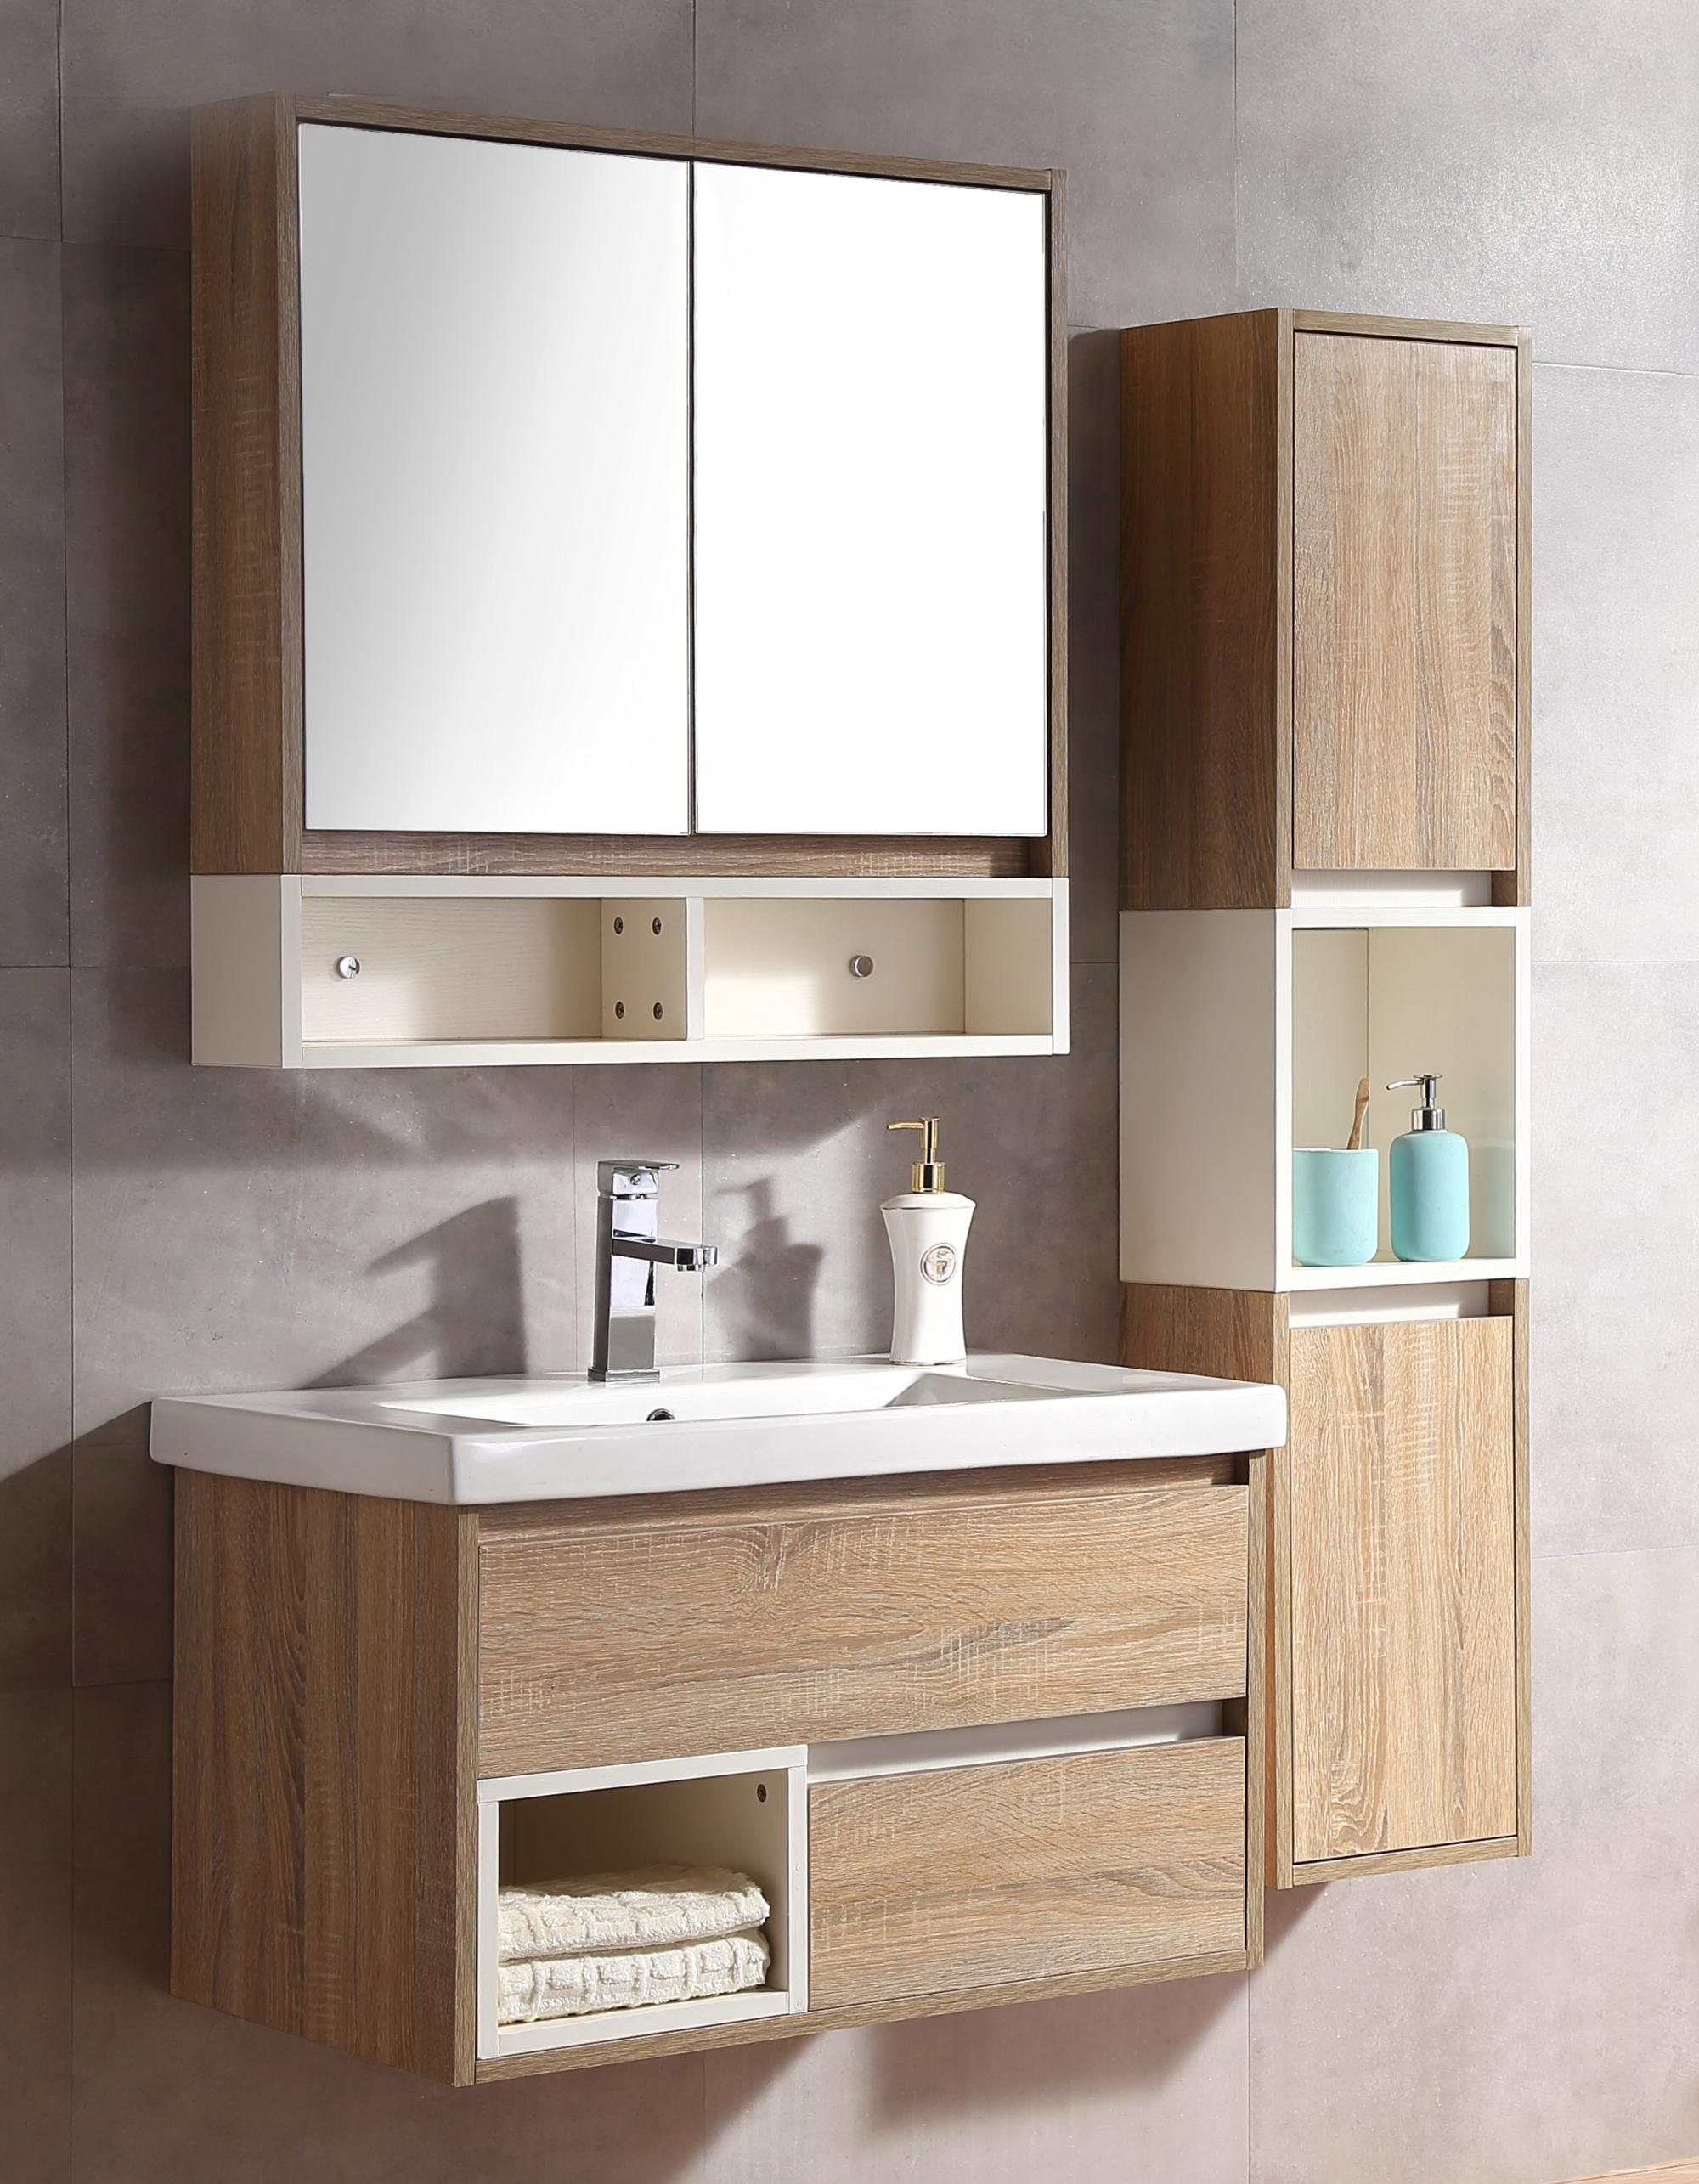 Picture of: 32 Double Sink Bathroom Vanity Set Floating Bath Cabinet With Mirror And Shelf Buy Bathrooms Cabinet With Double Sink Floating Bath Cabinet Bath Cabinet With Wall Shelf Product On Alibaba Com